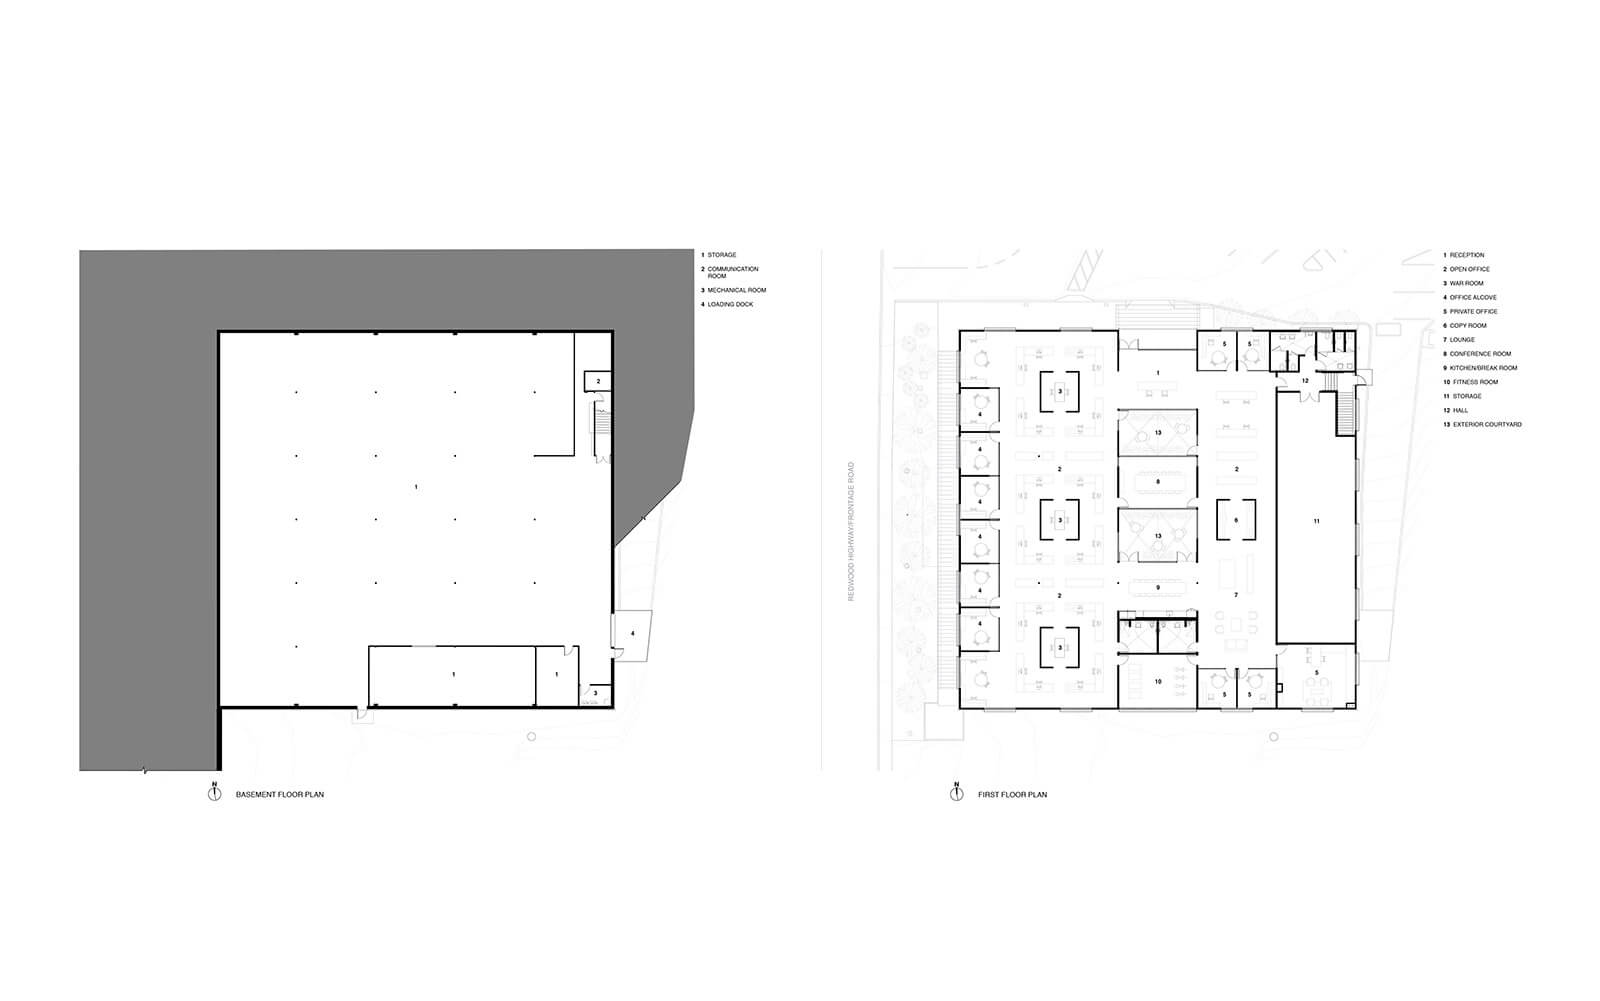 studio vara workplace redwood highway drawing floor plan